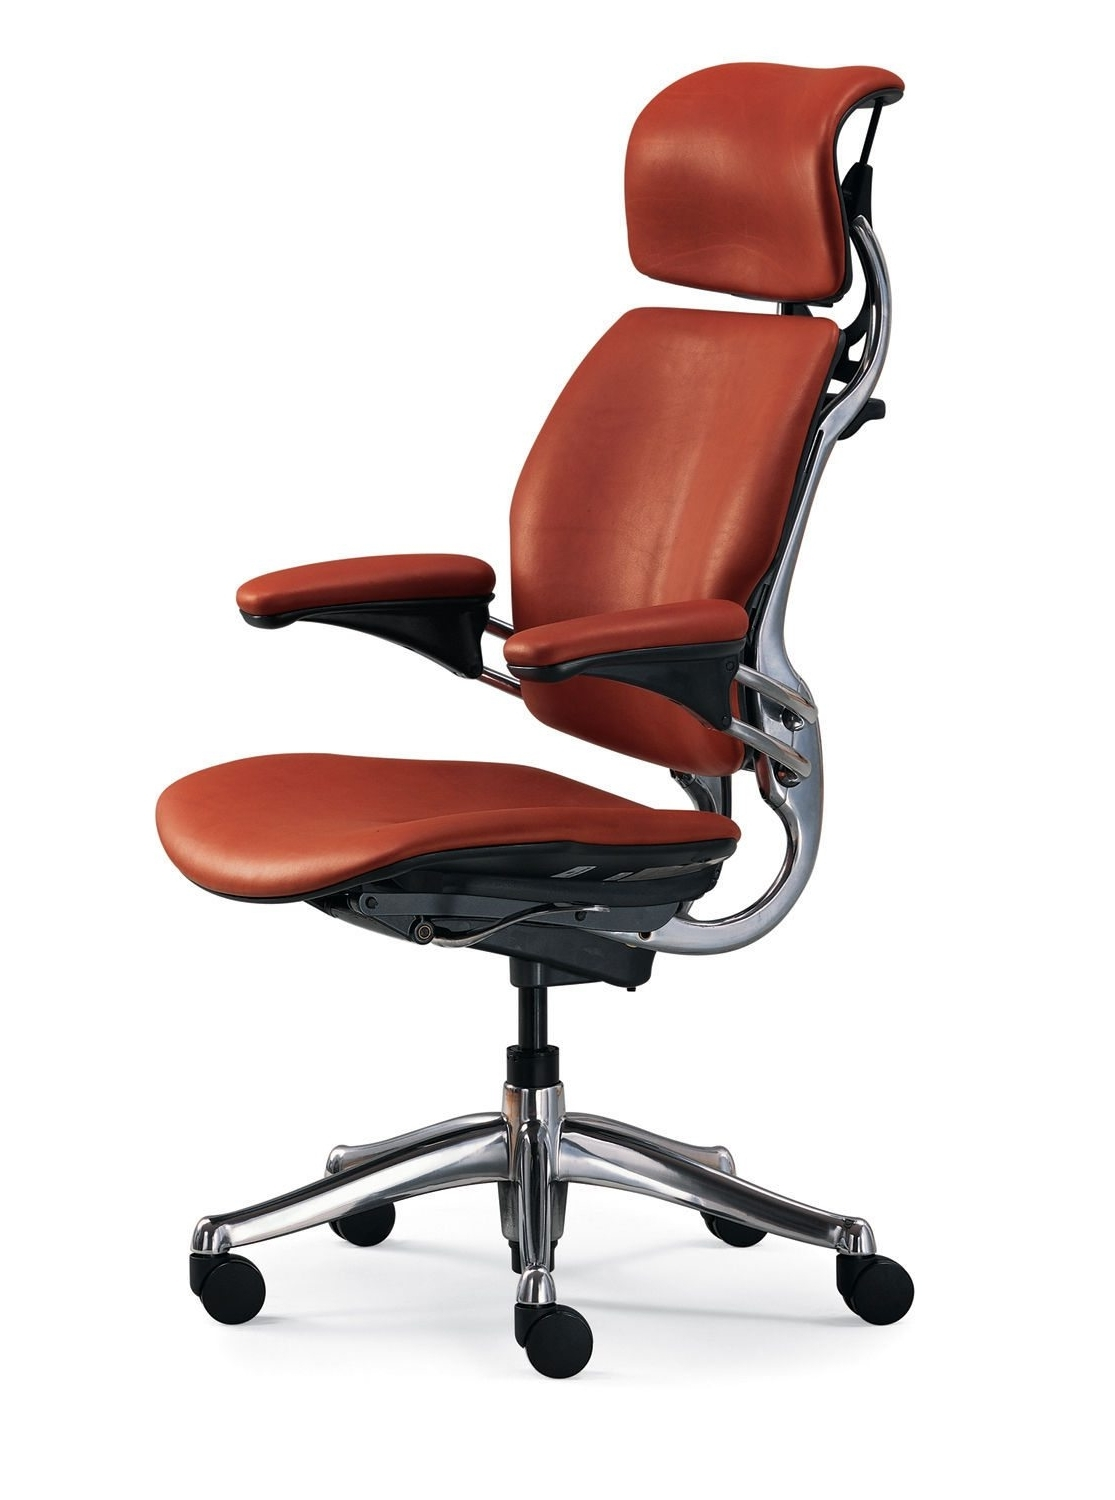 Best And Newest Best Office Chair For 2018 – The Ultimate Guide – Office Chairs Inside Quality Executive Office Chairs (View 19 of 20)